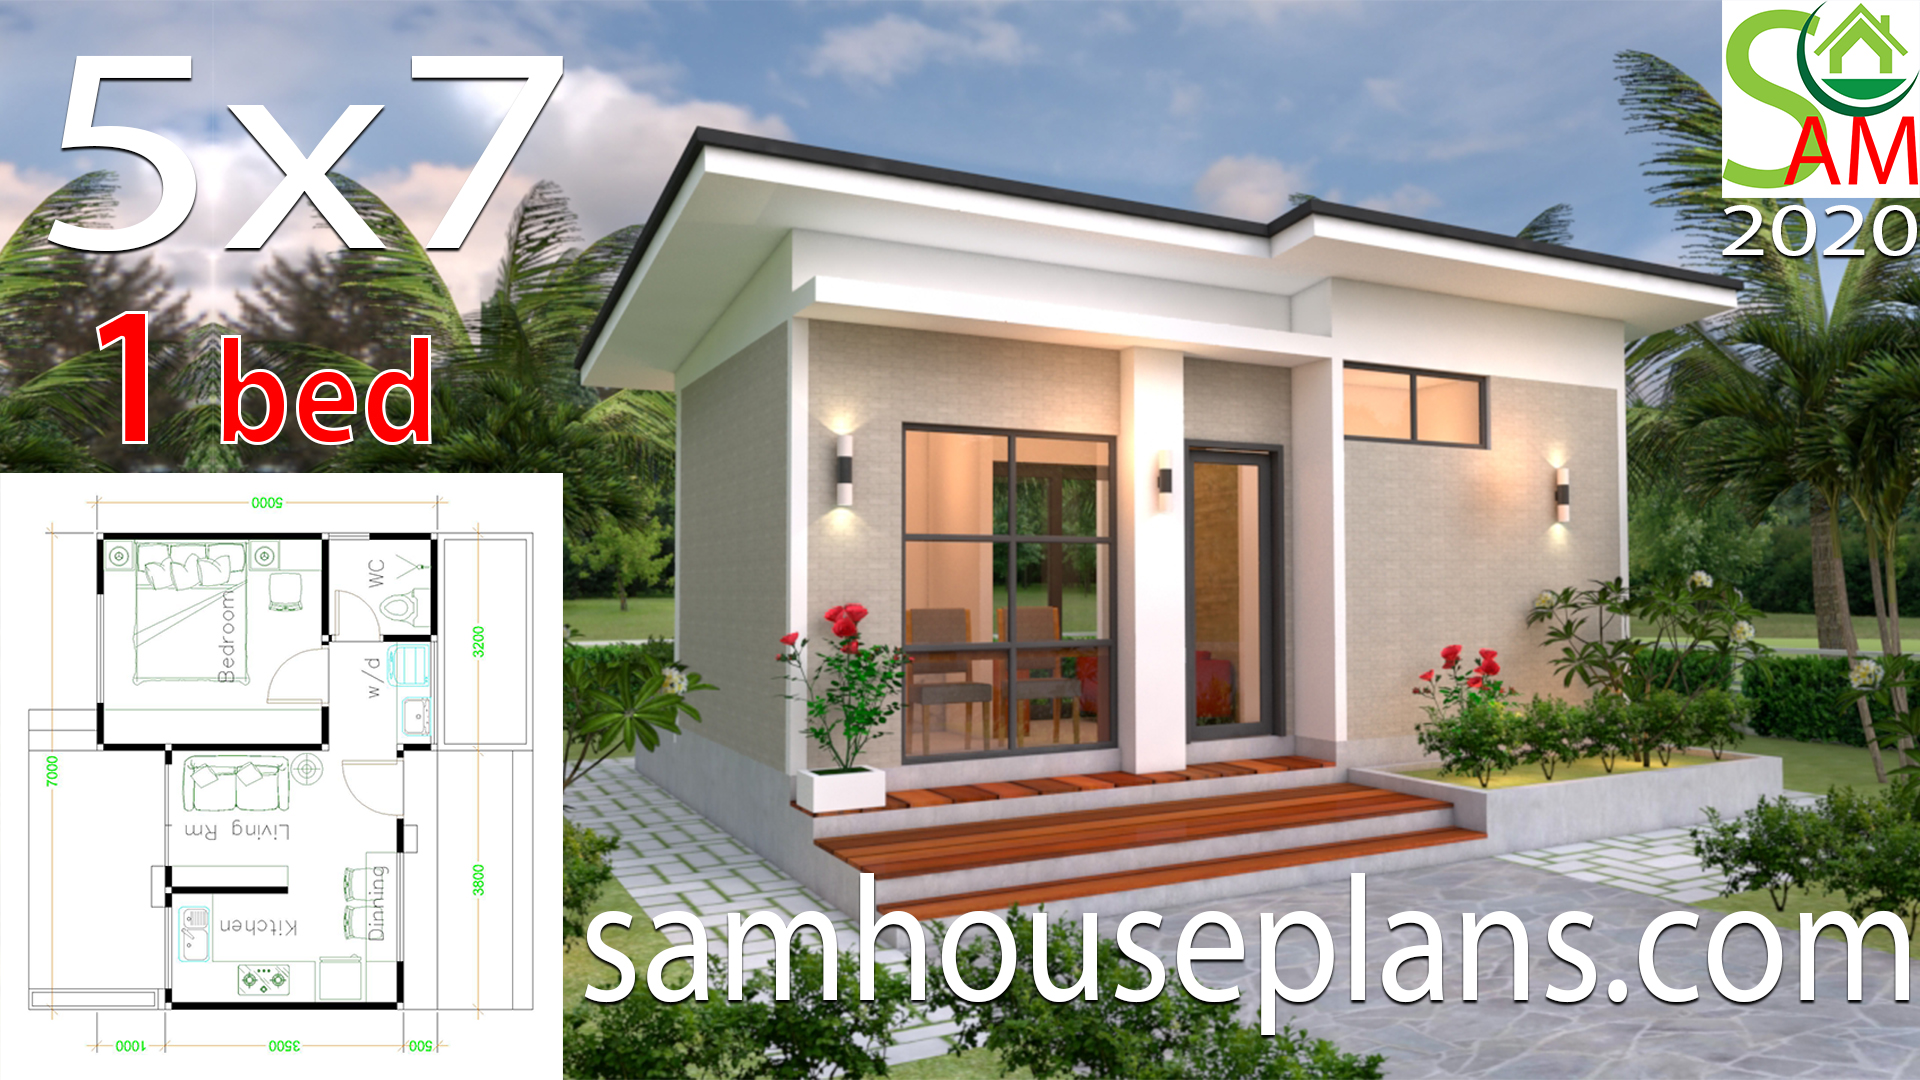 House Design Plans 5x7 With One Bedroom Shed Roof Samhouseplans